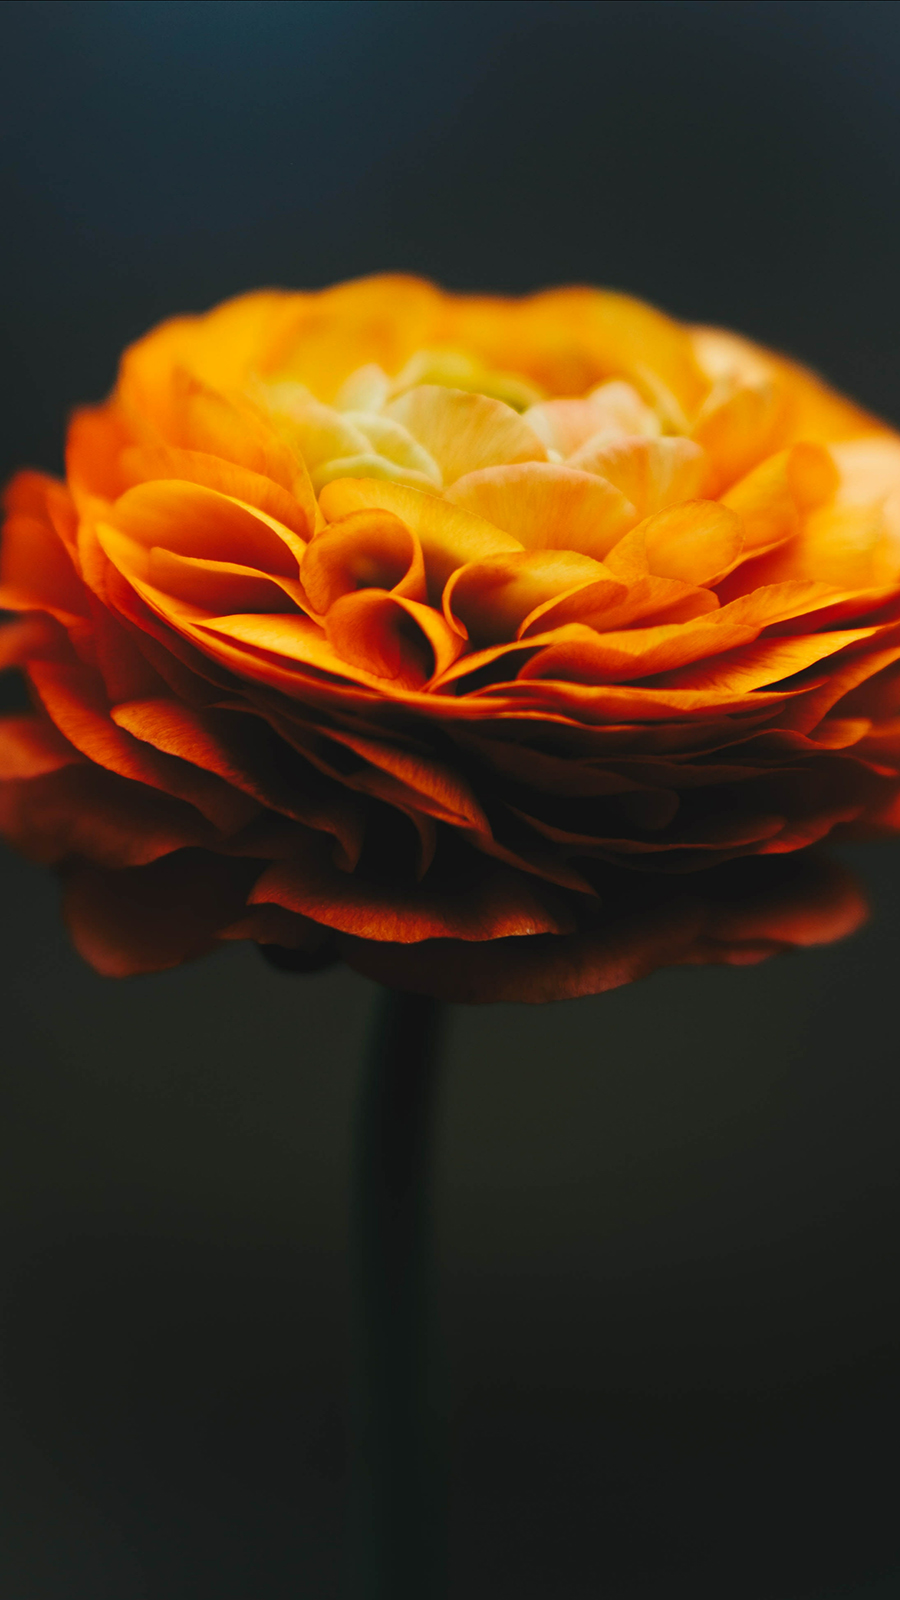 Macro Orange Flower Free Download